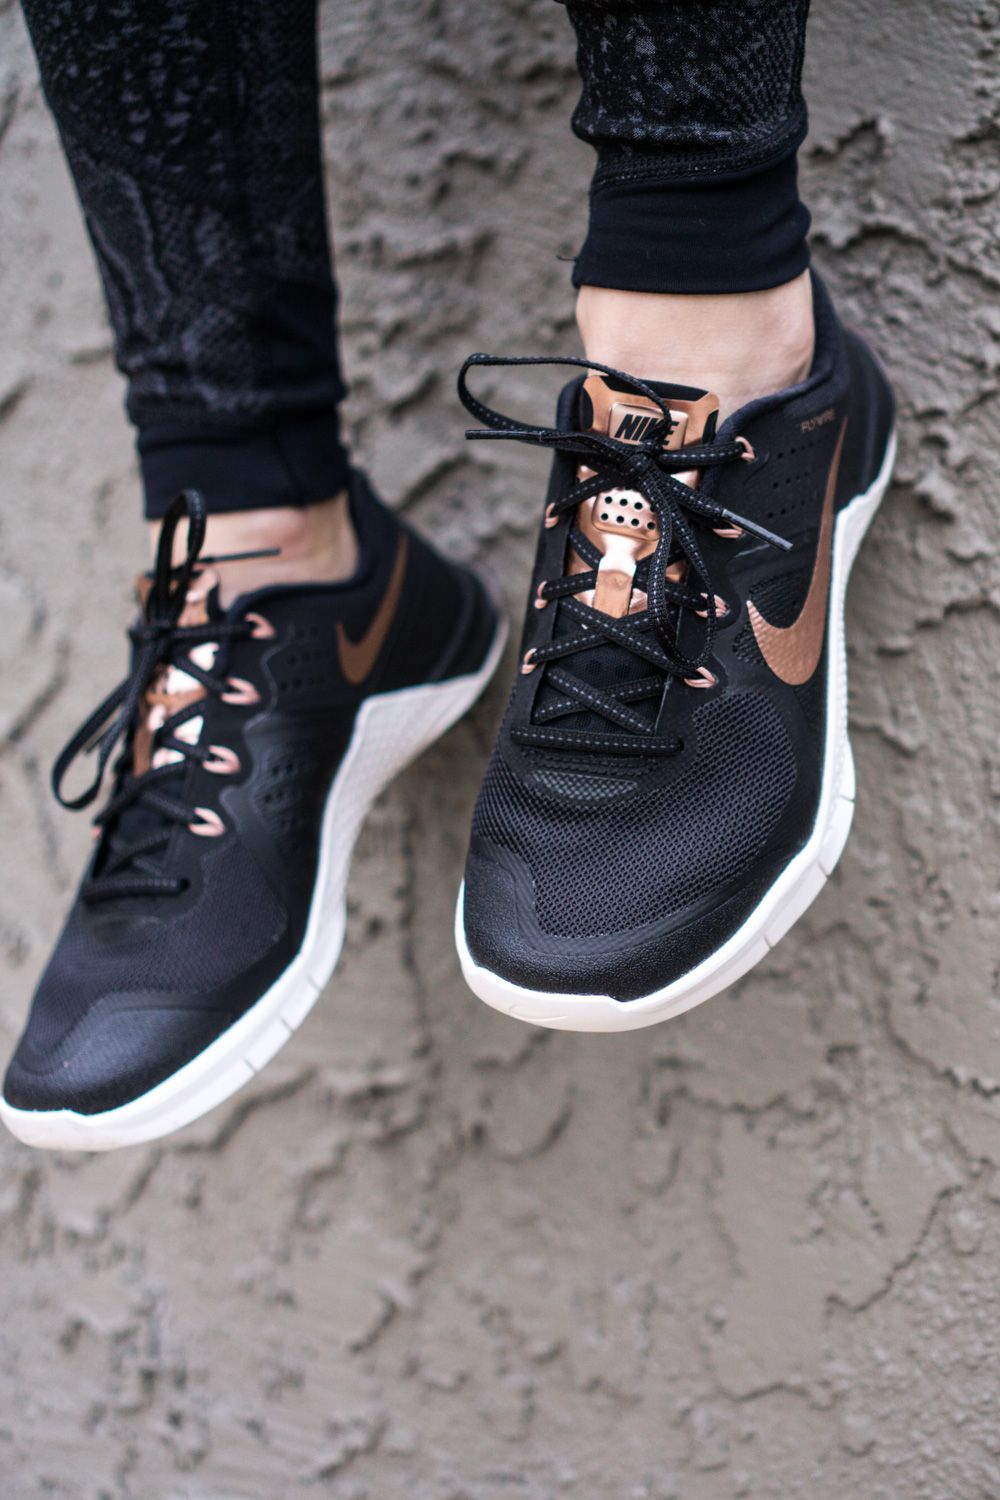 reputable site c4268 44921 Rose Gold Nike Metcons   Fitness Gear  Shoes   Gold nike shoes, Rose ...